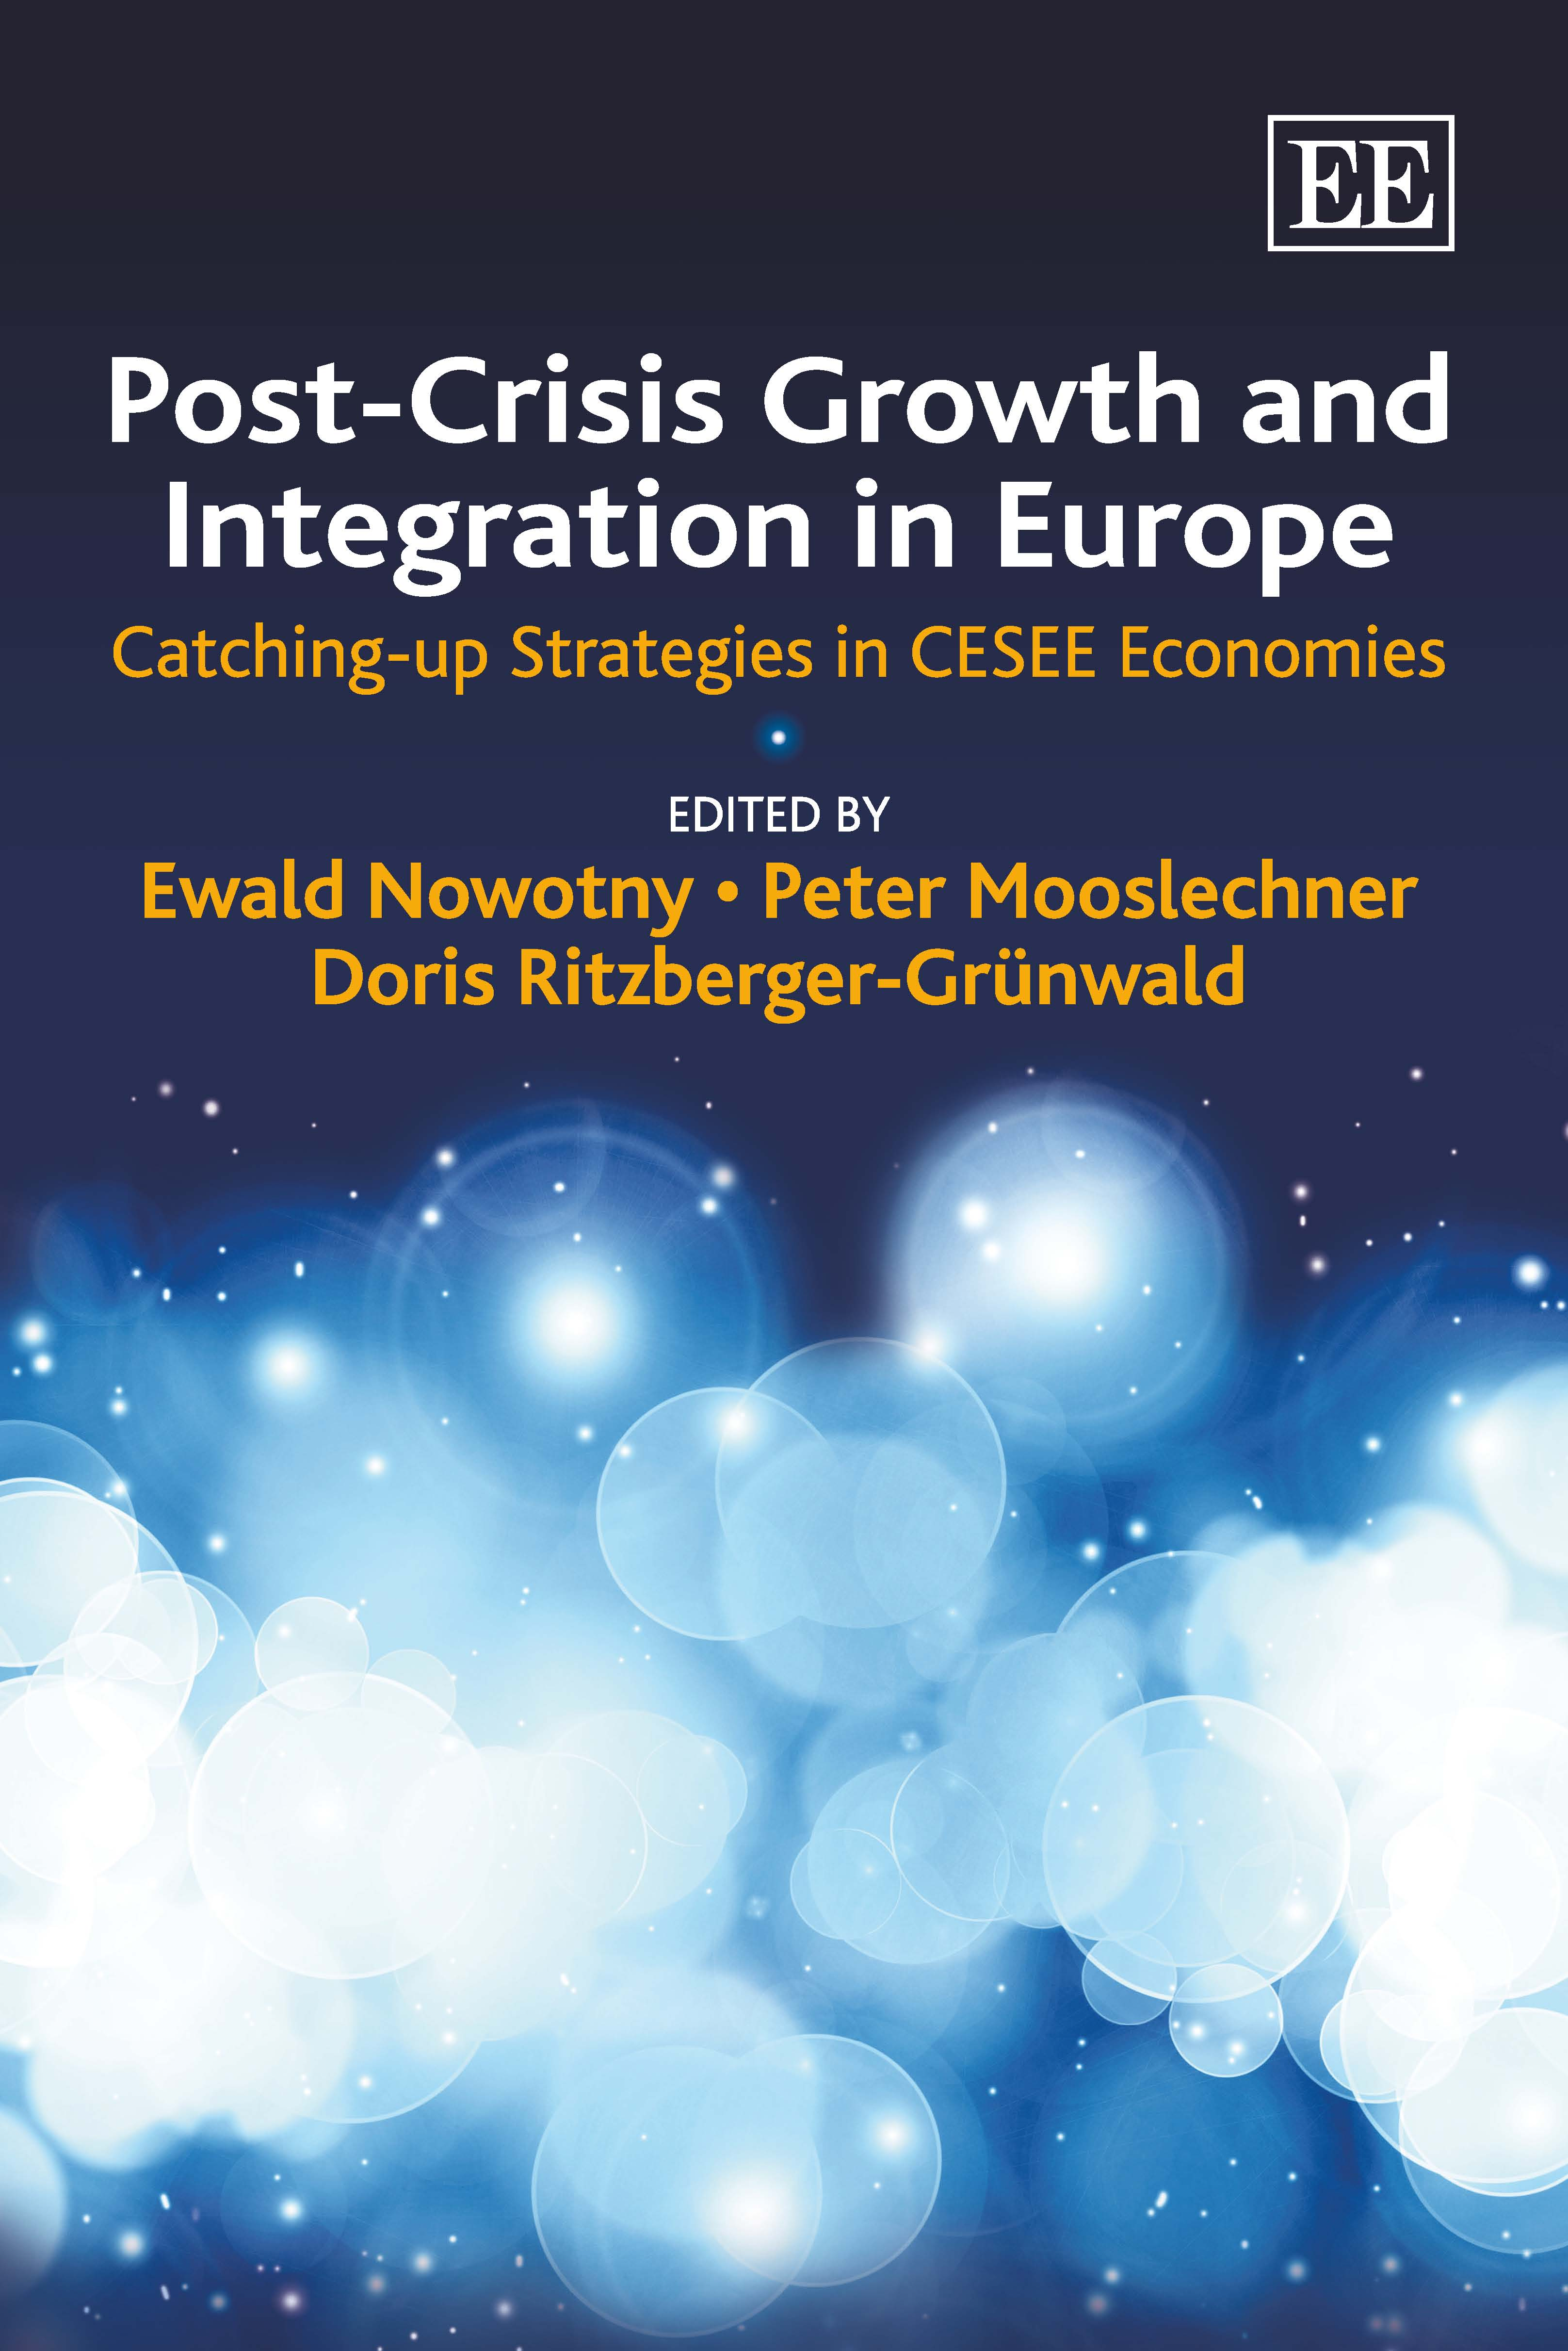 Post-Crisis Growth and Integration in Europe